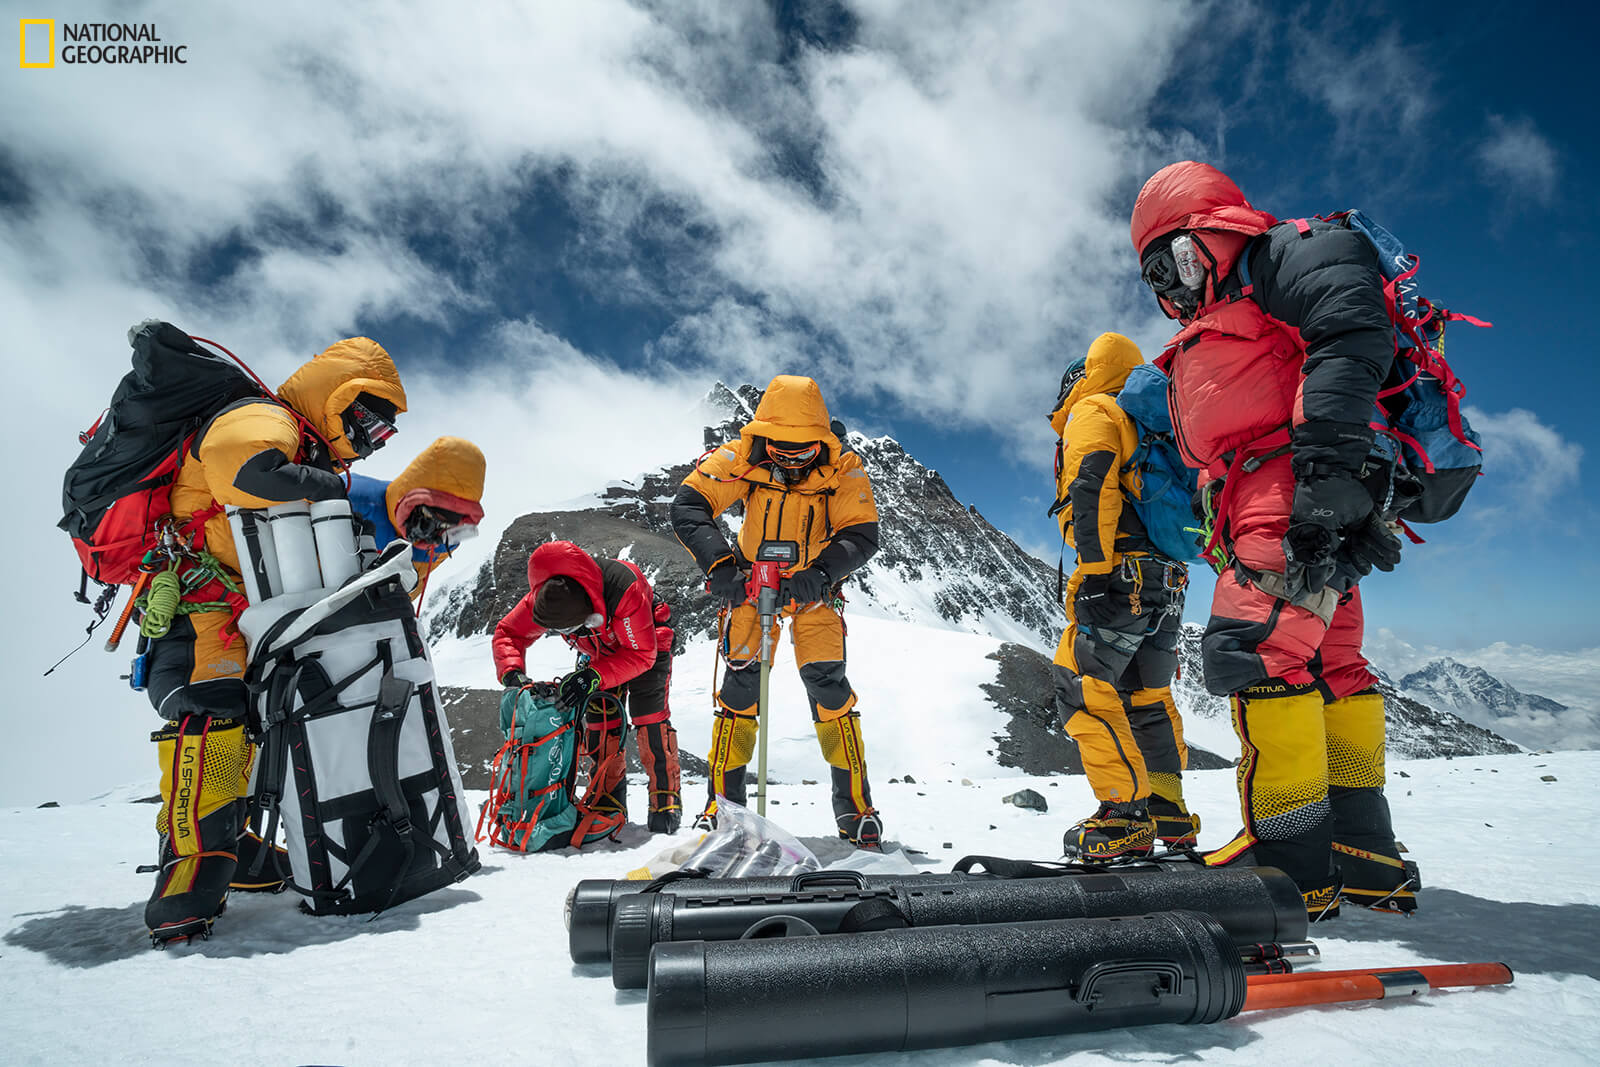 Ice core drilling on Mount Everest